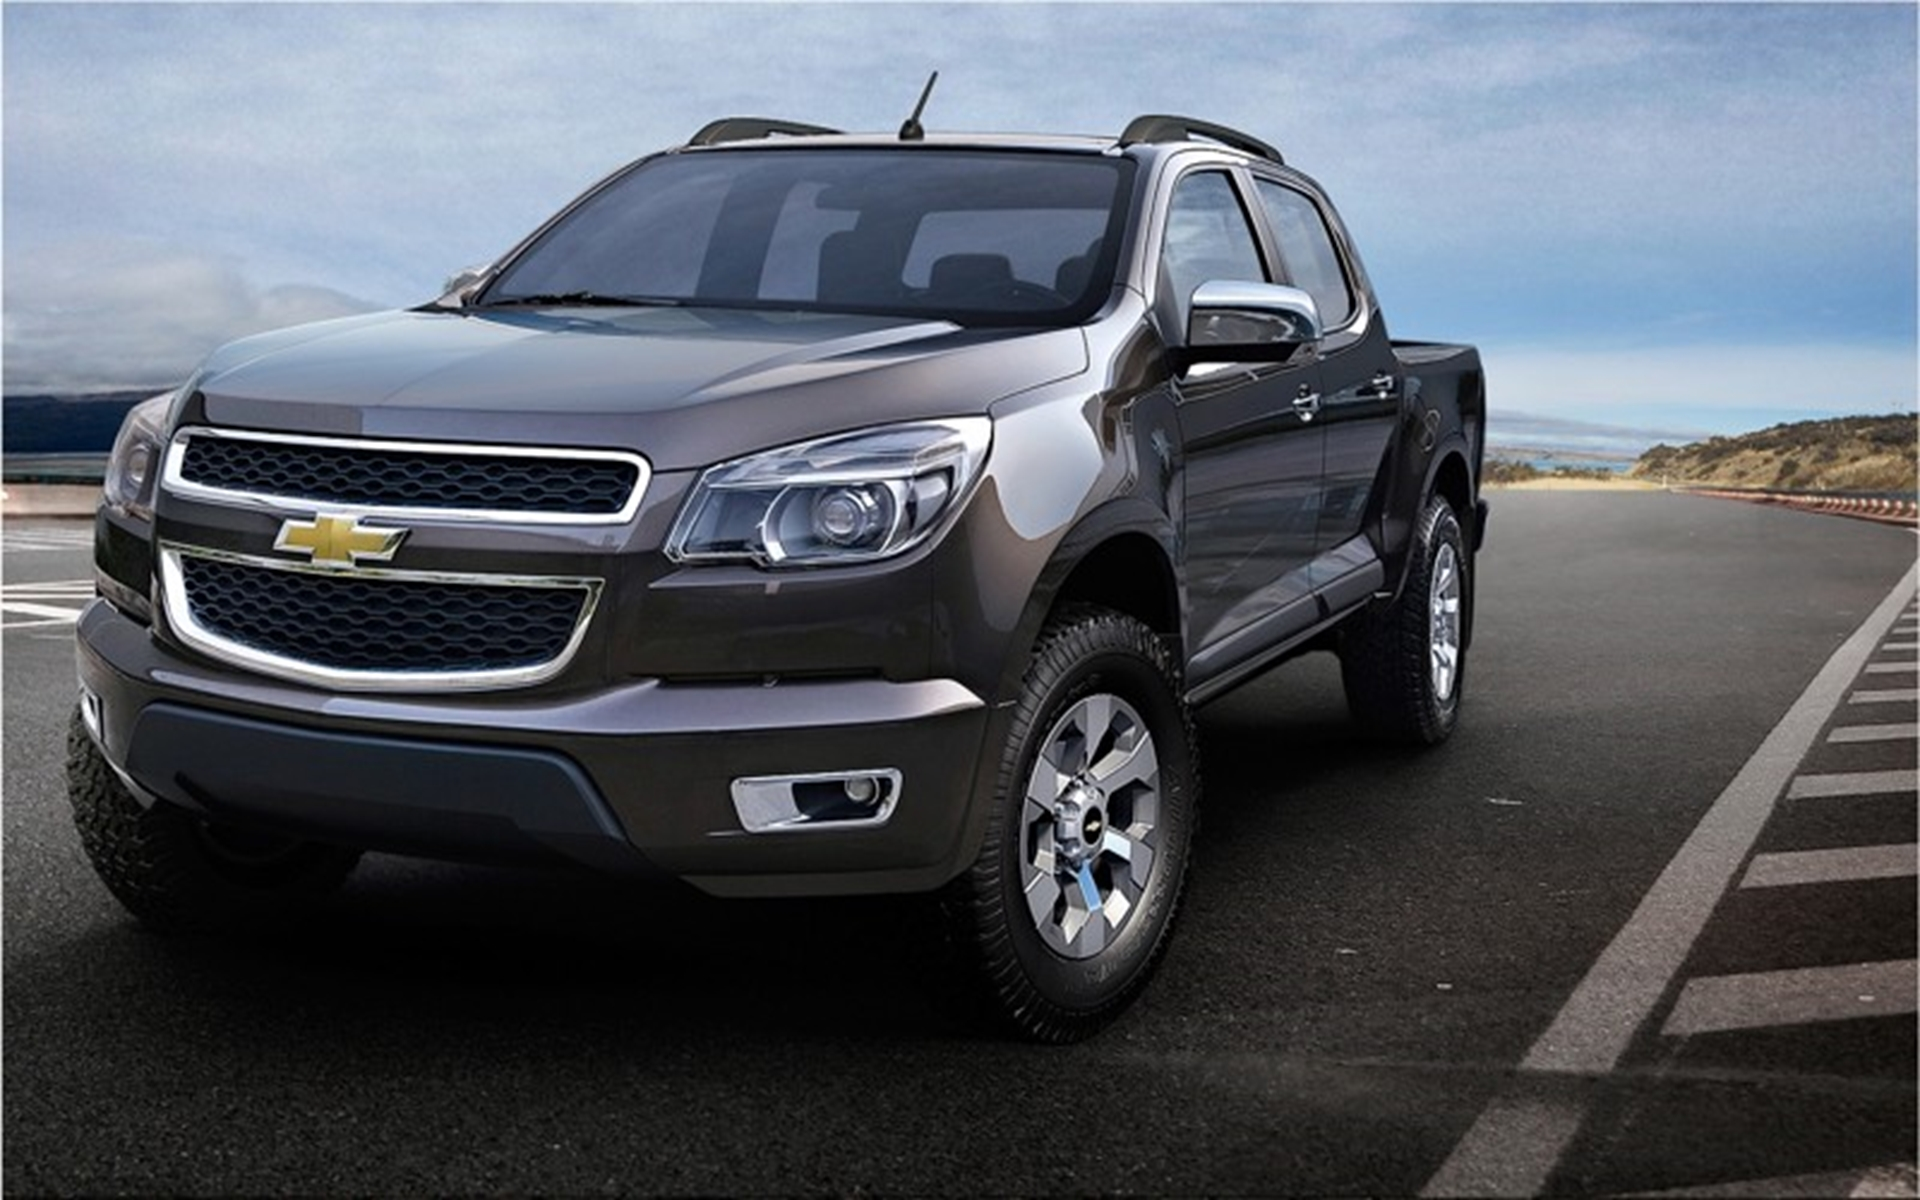 2012 Chevrolet Colorado Crew